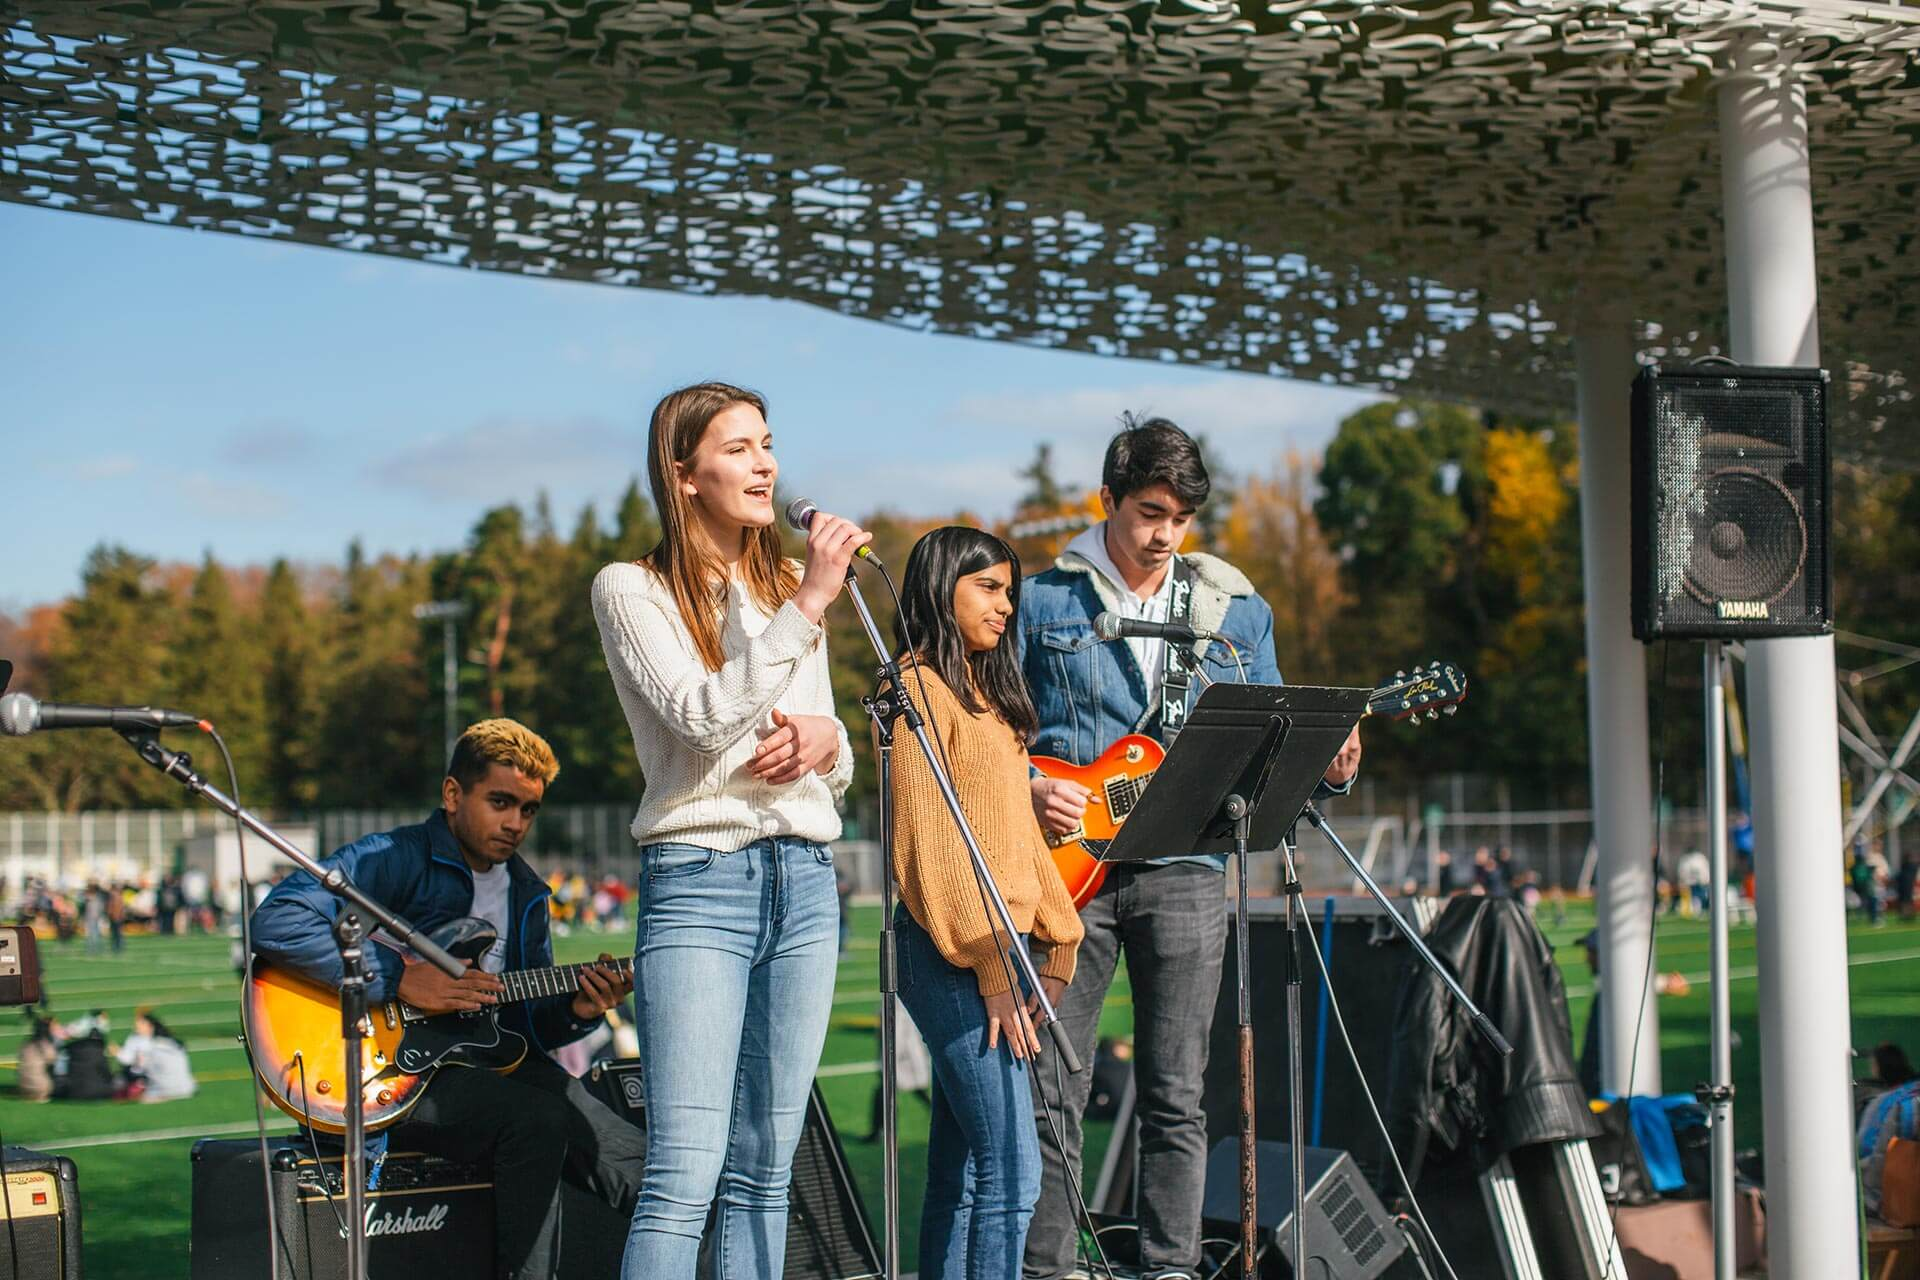 Students Perform in the Main Courtyard